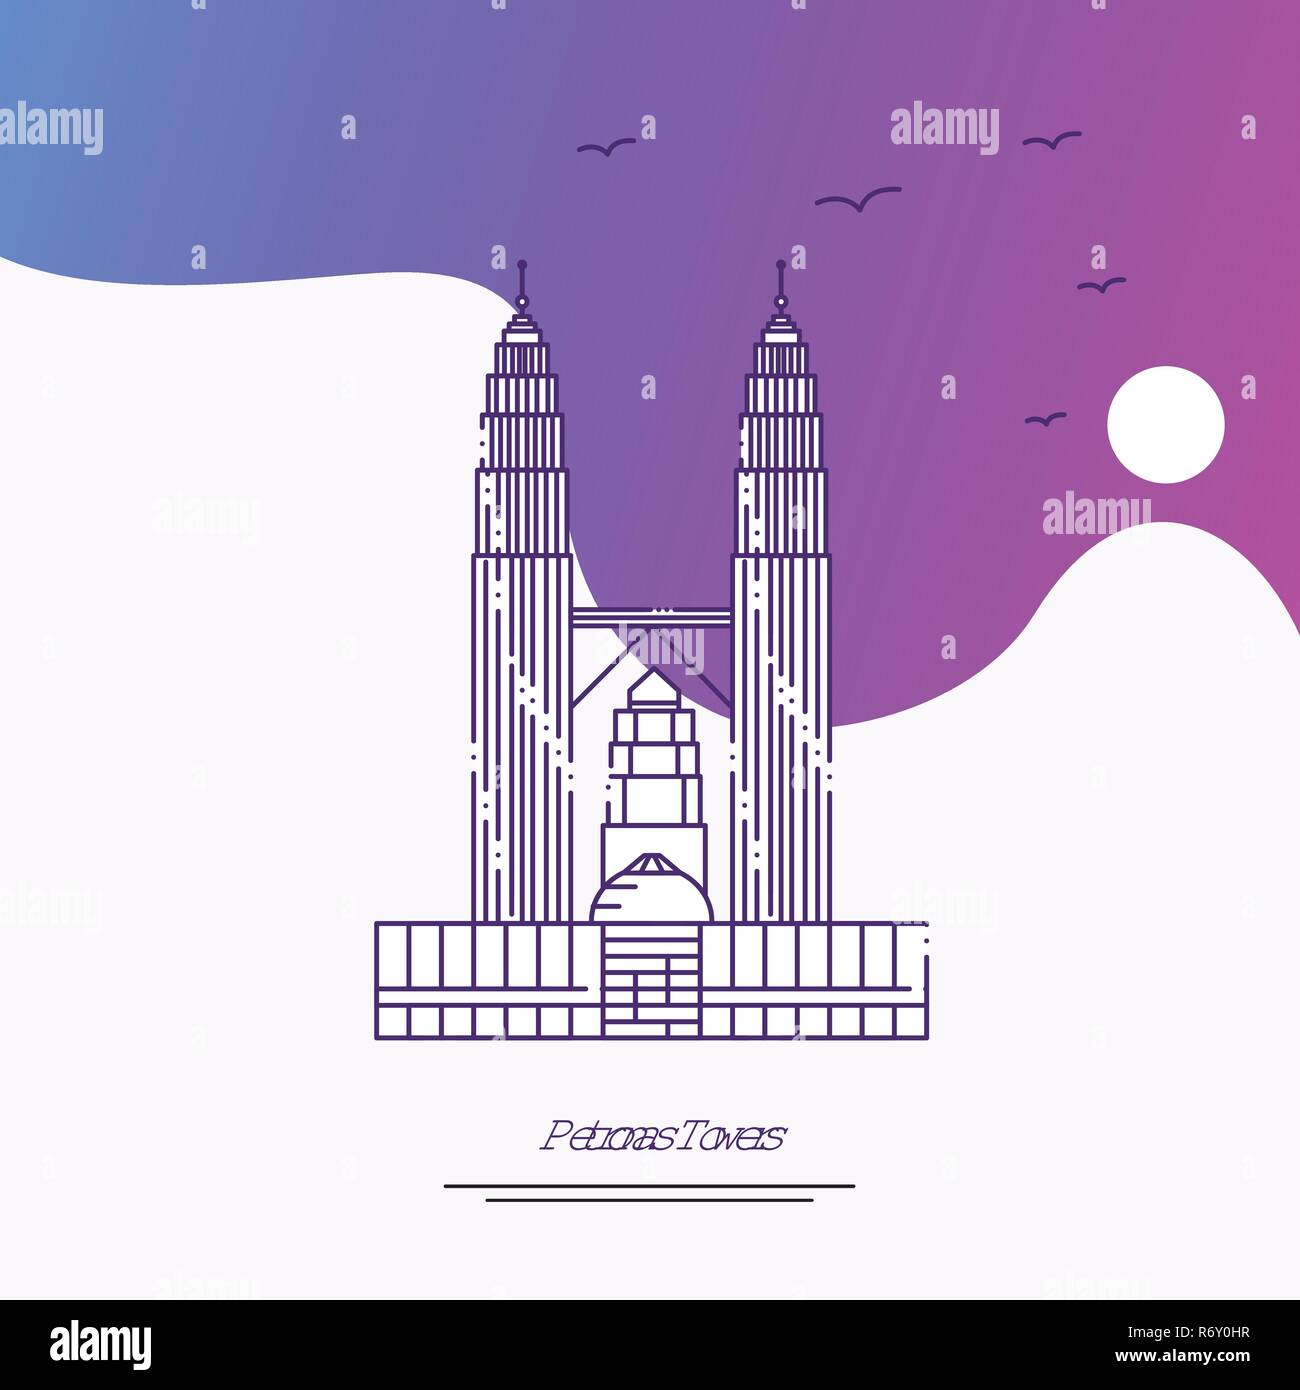 Travel PETRONAS TOWERS Poster Template. Purple creative background - Stock Vector